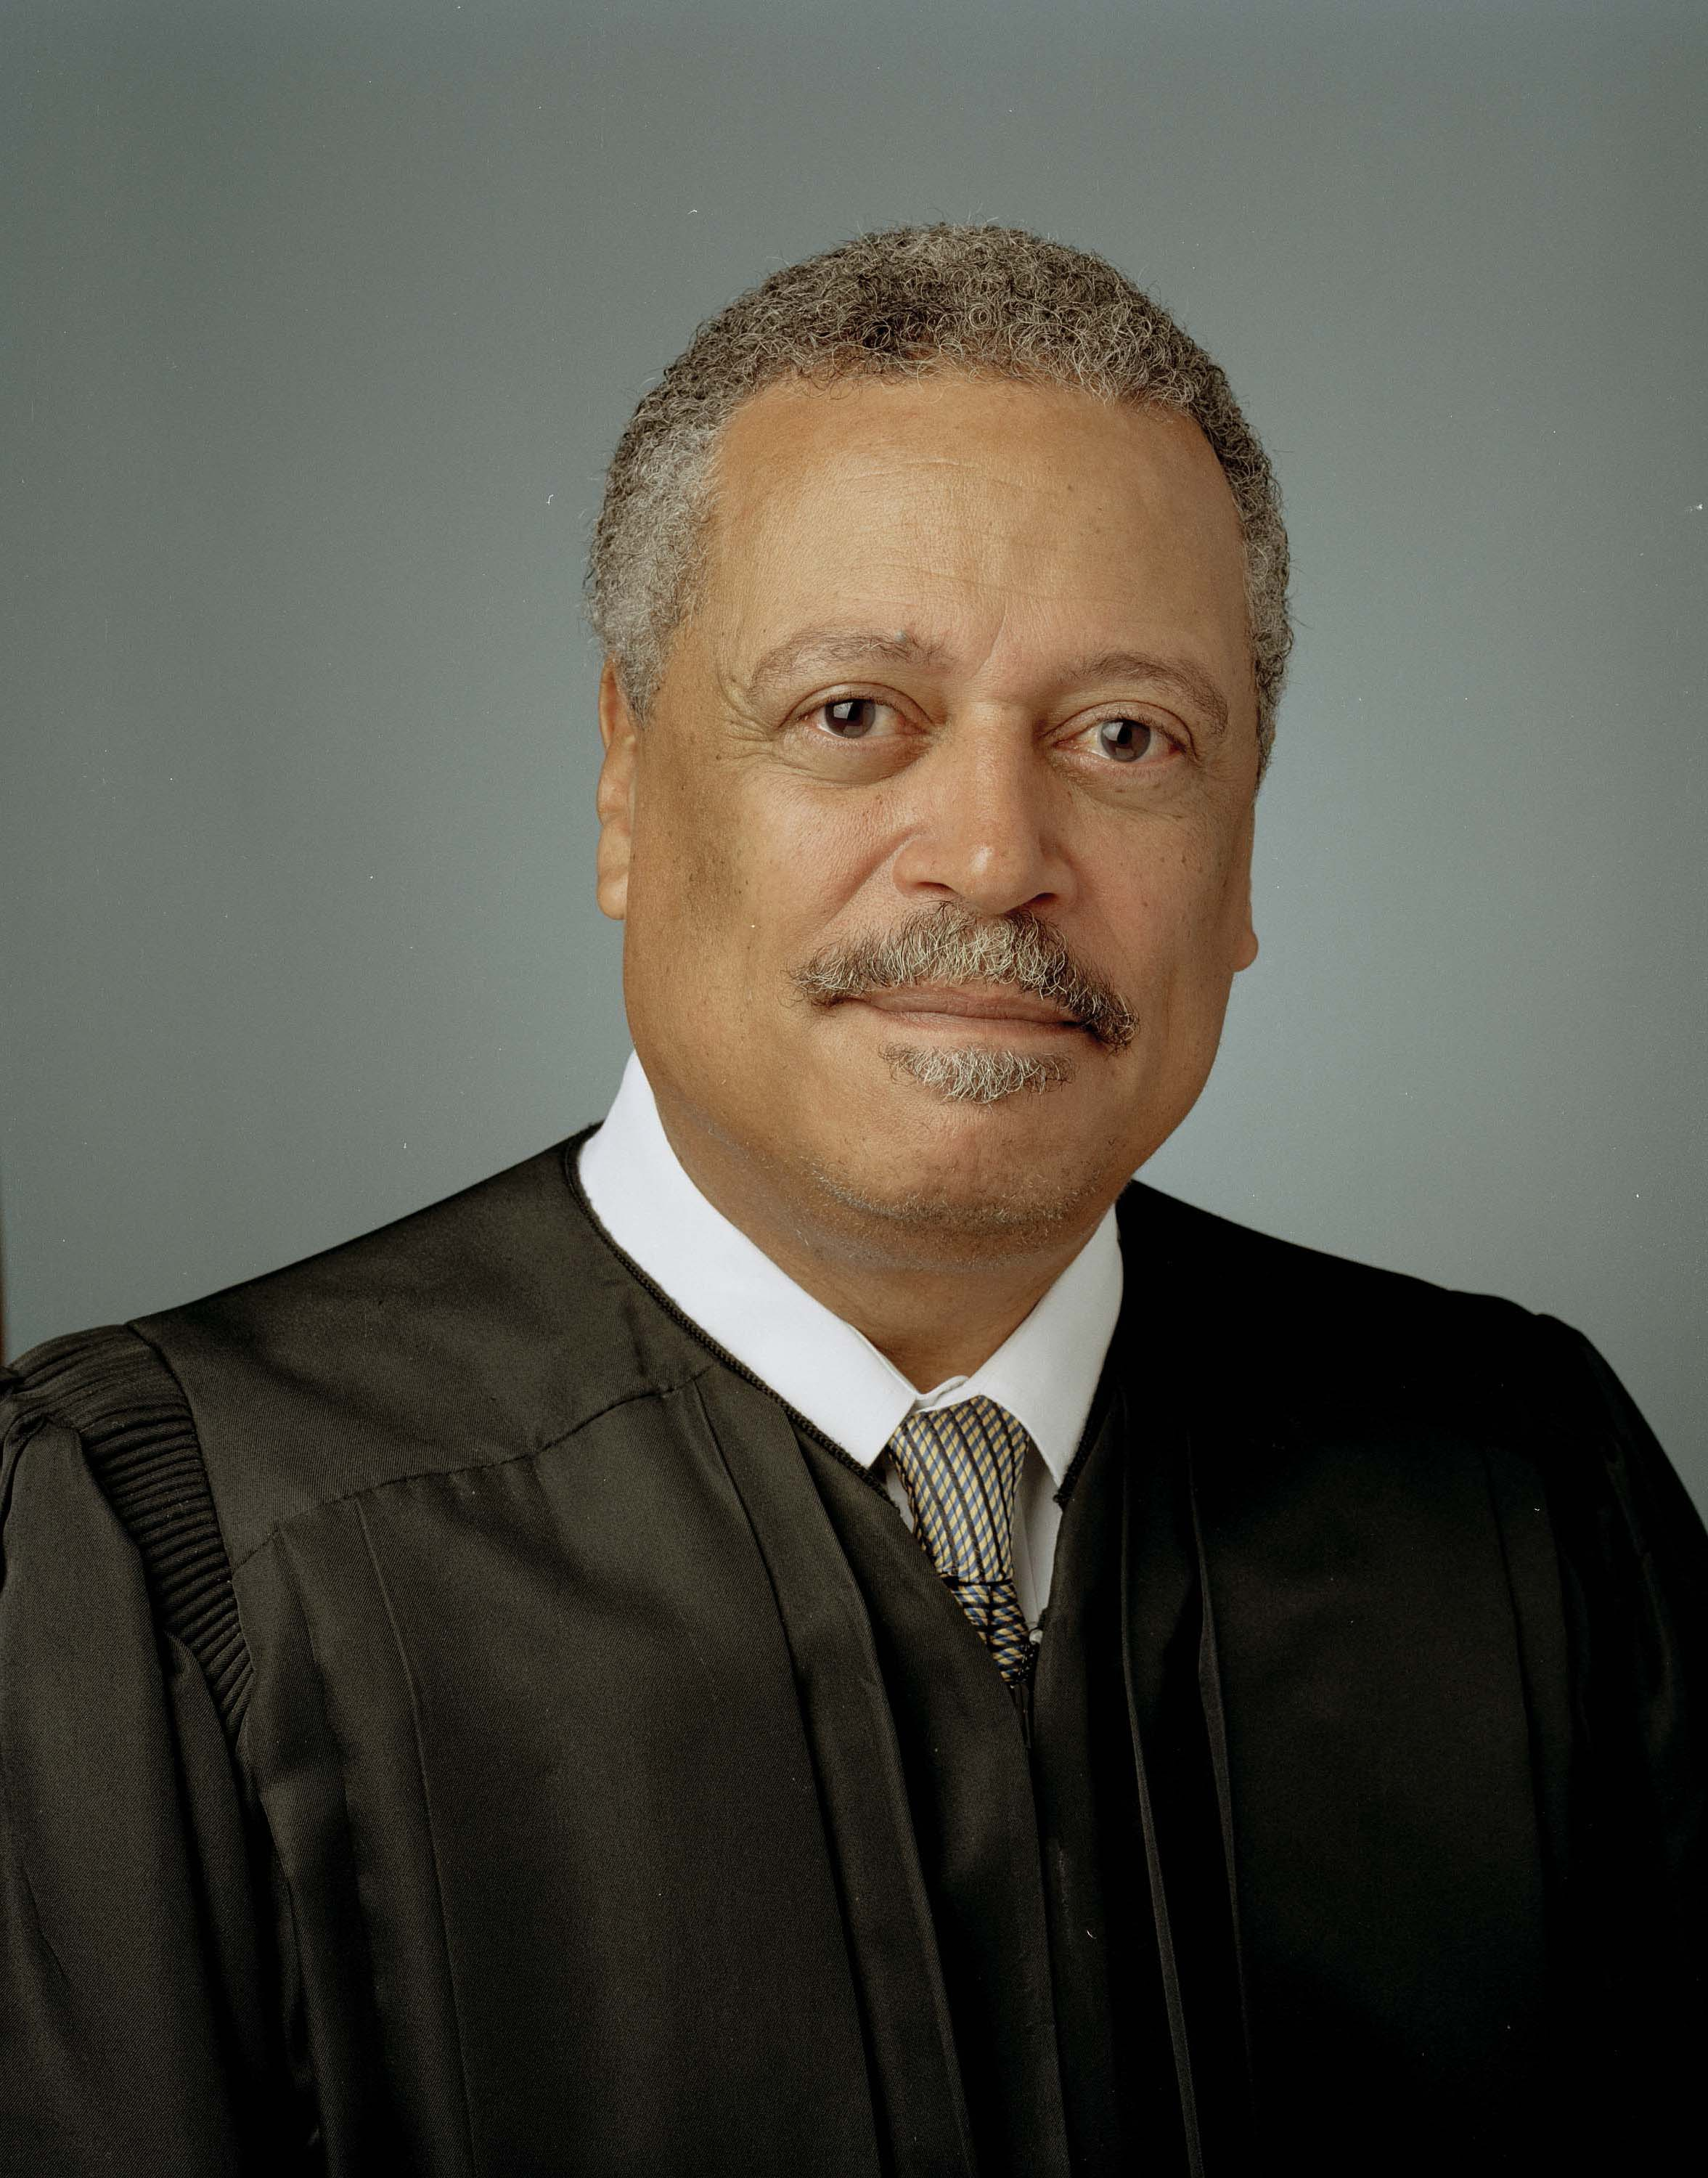 District Judge Emmet G. Sullivan